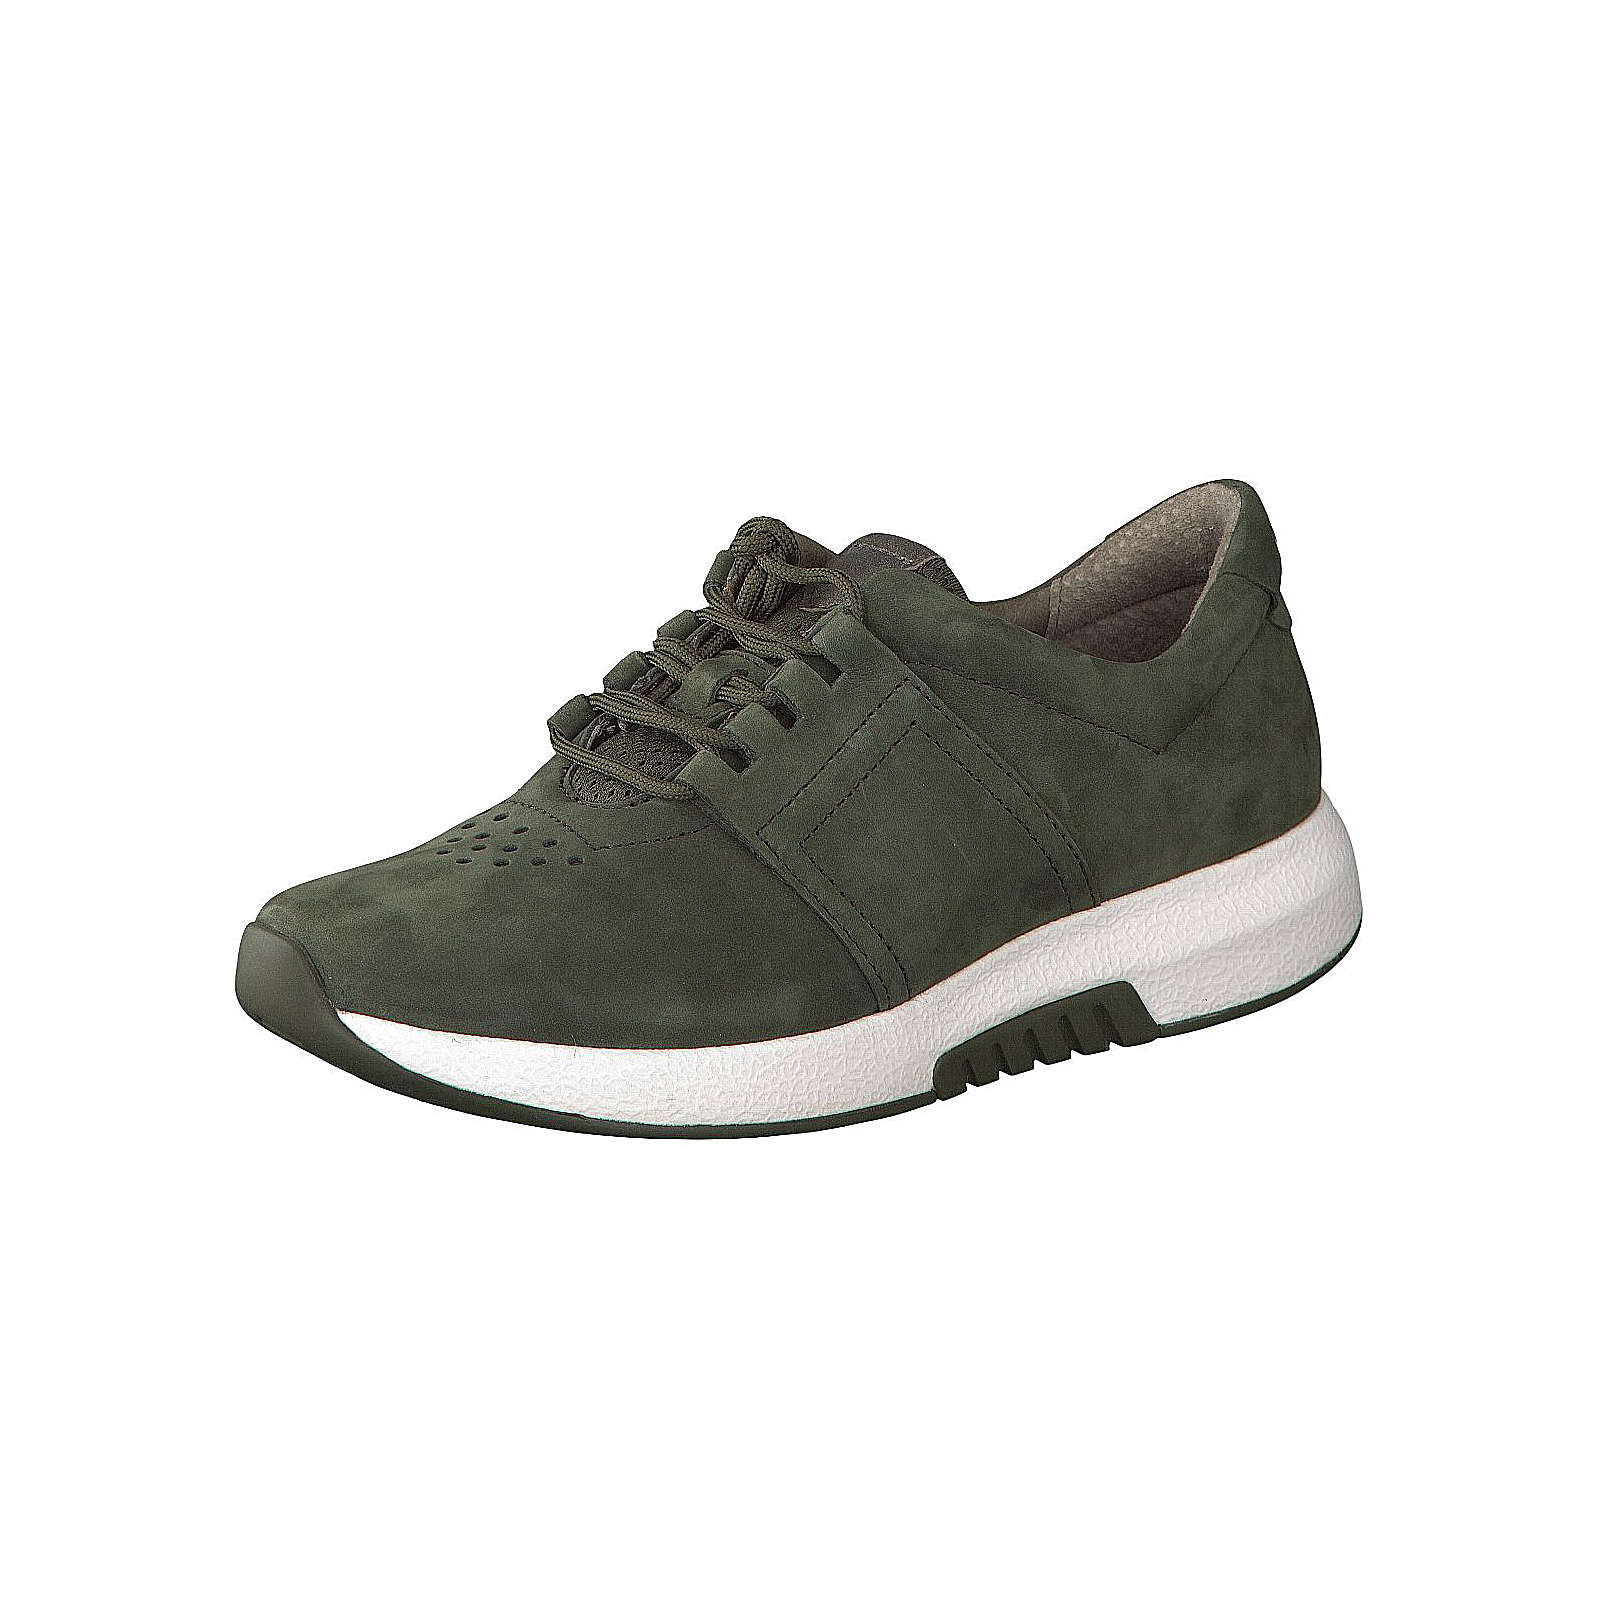 Gabor Sneakers Low grün Damen Gr. 38